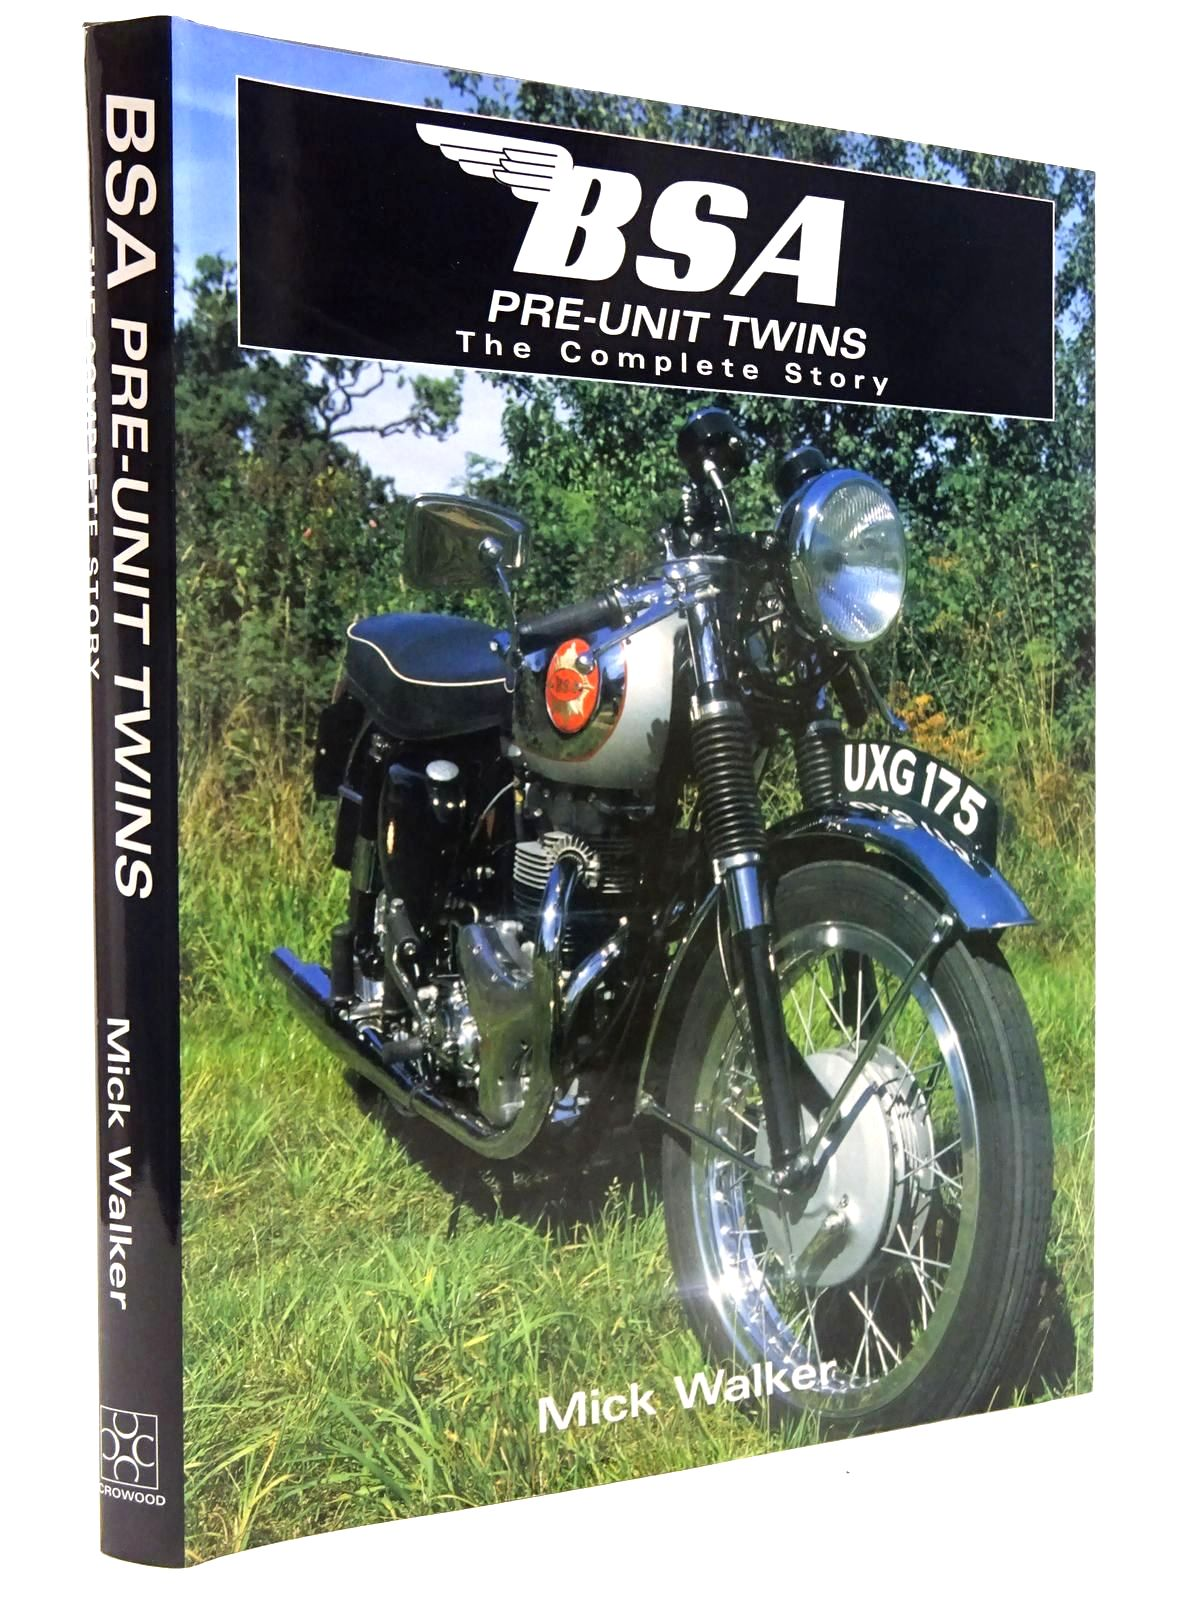 Photo of BSA PRE-UNIT TWINS THE COMPLETE STORY written by Walker, Mick published by The Crowood Press (STOCK CODE: 2129010)  for sale by Stella & Rose's Books